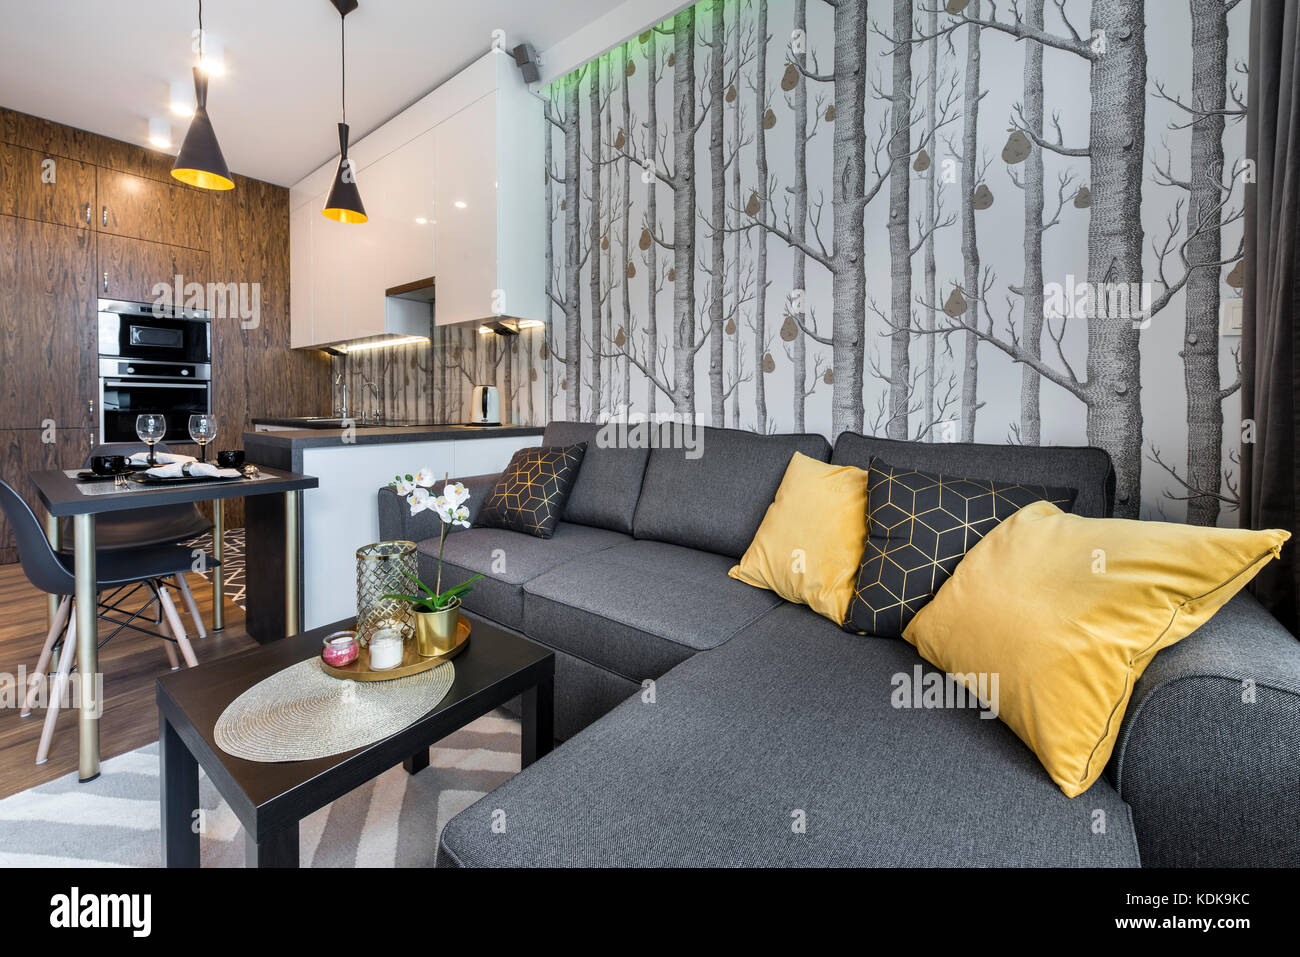 Modern Interior Design Small Apartment With Open Space Kitchen Stock Photo Alamy